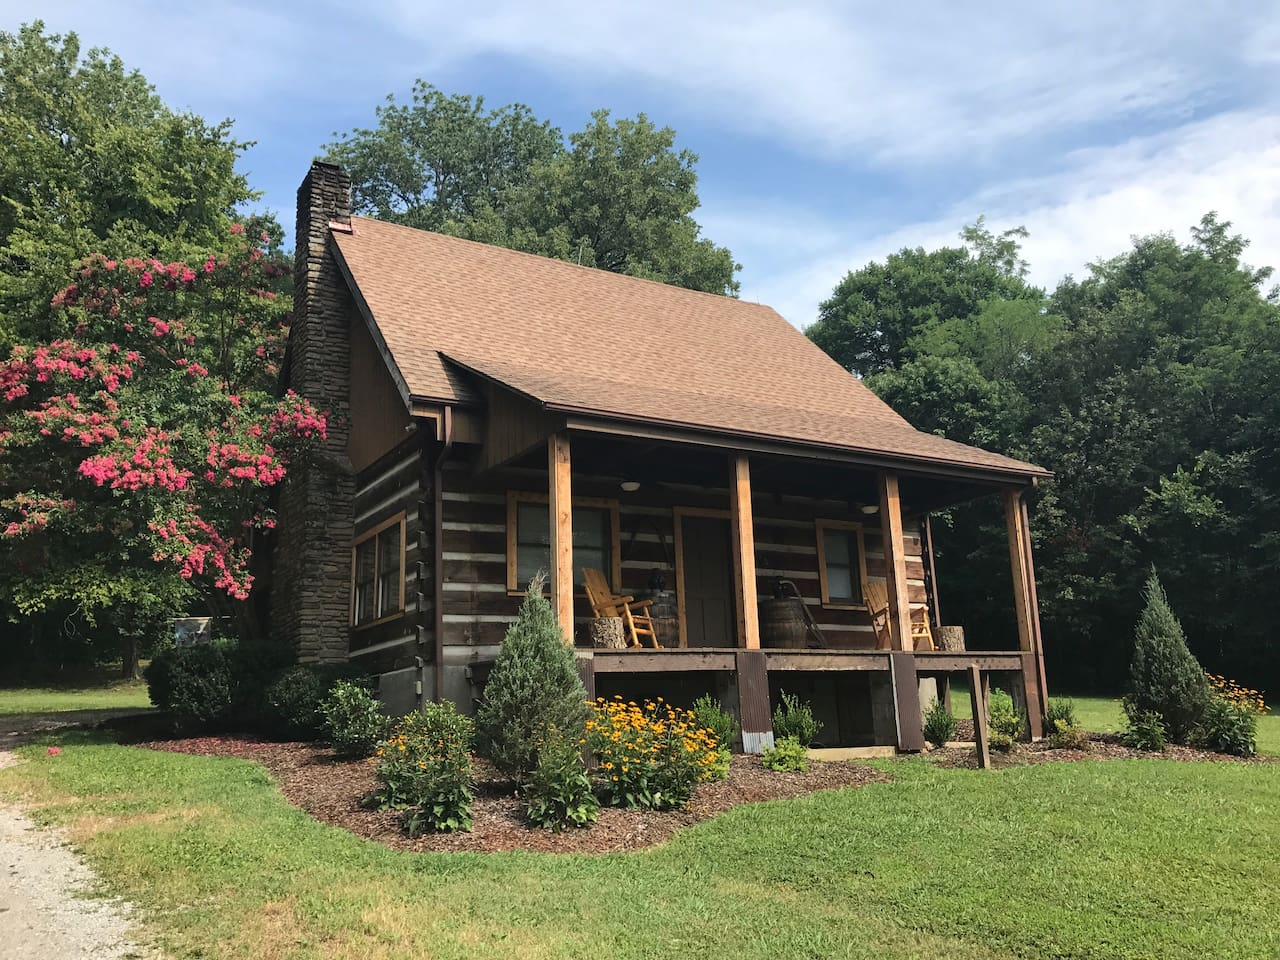 The Cabin at Flat Rock Farms is the perfect getaway in Middle Tennessee...located on a beautiful and gated 115-acre working horse farm.